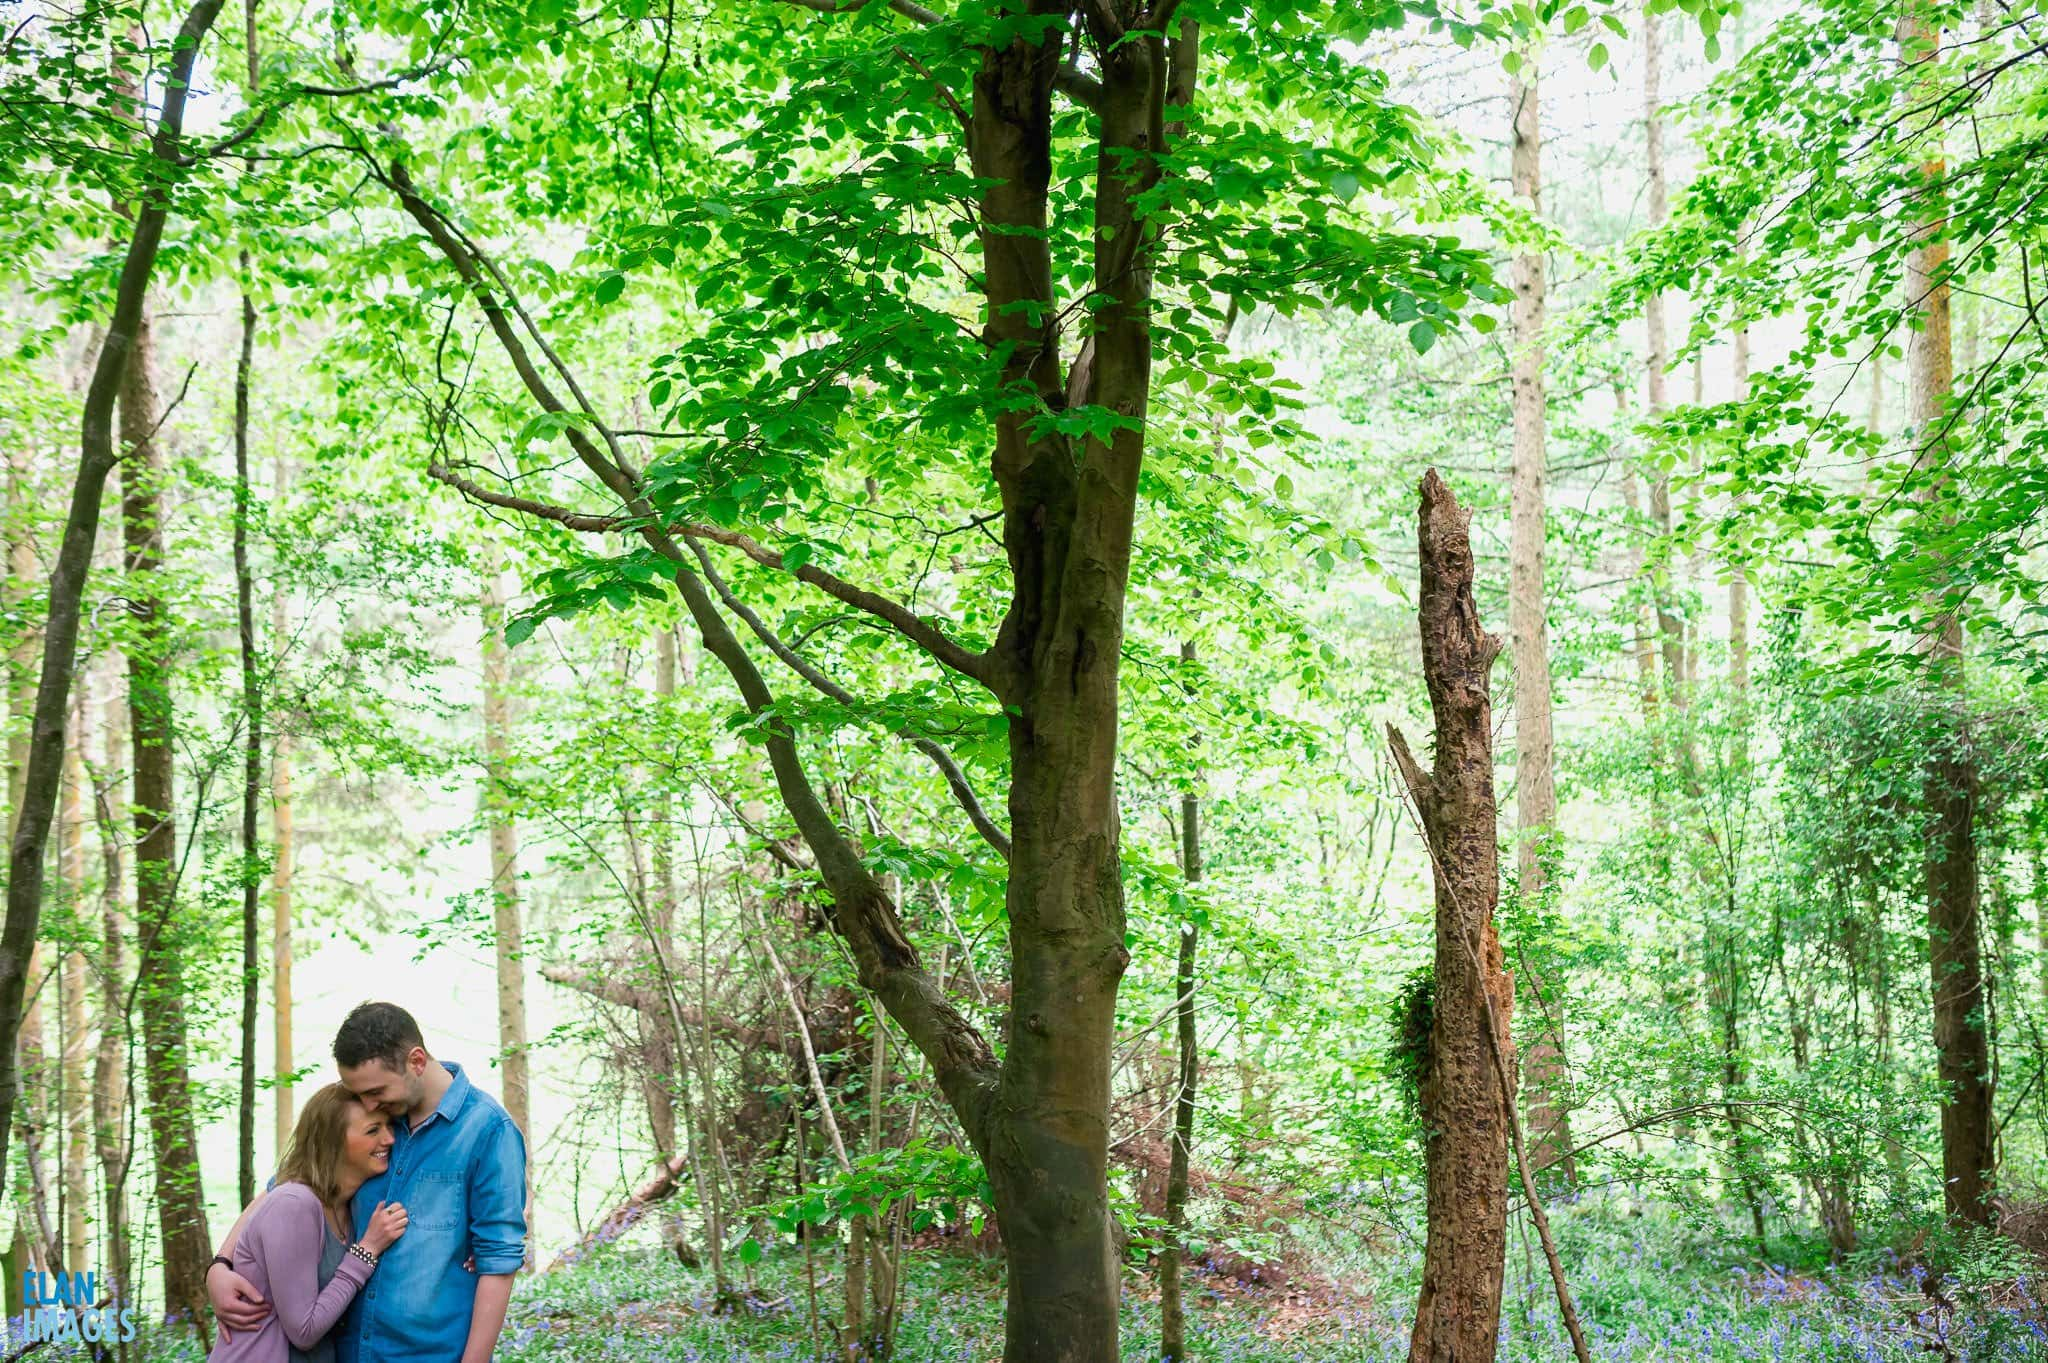 Engagement Photo Shoot in the Bluebell Woods near Bristol 39